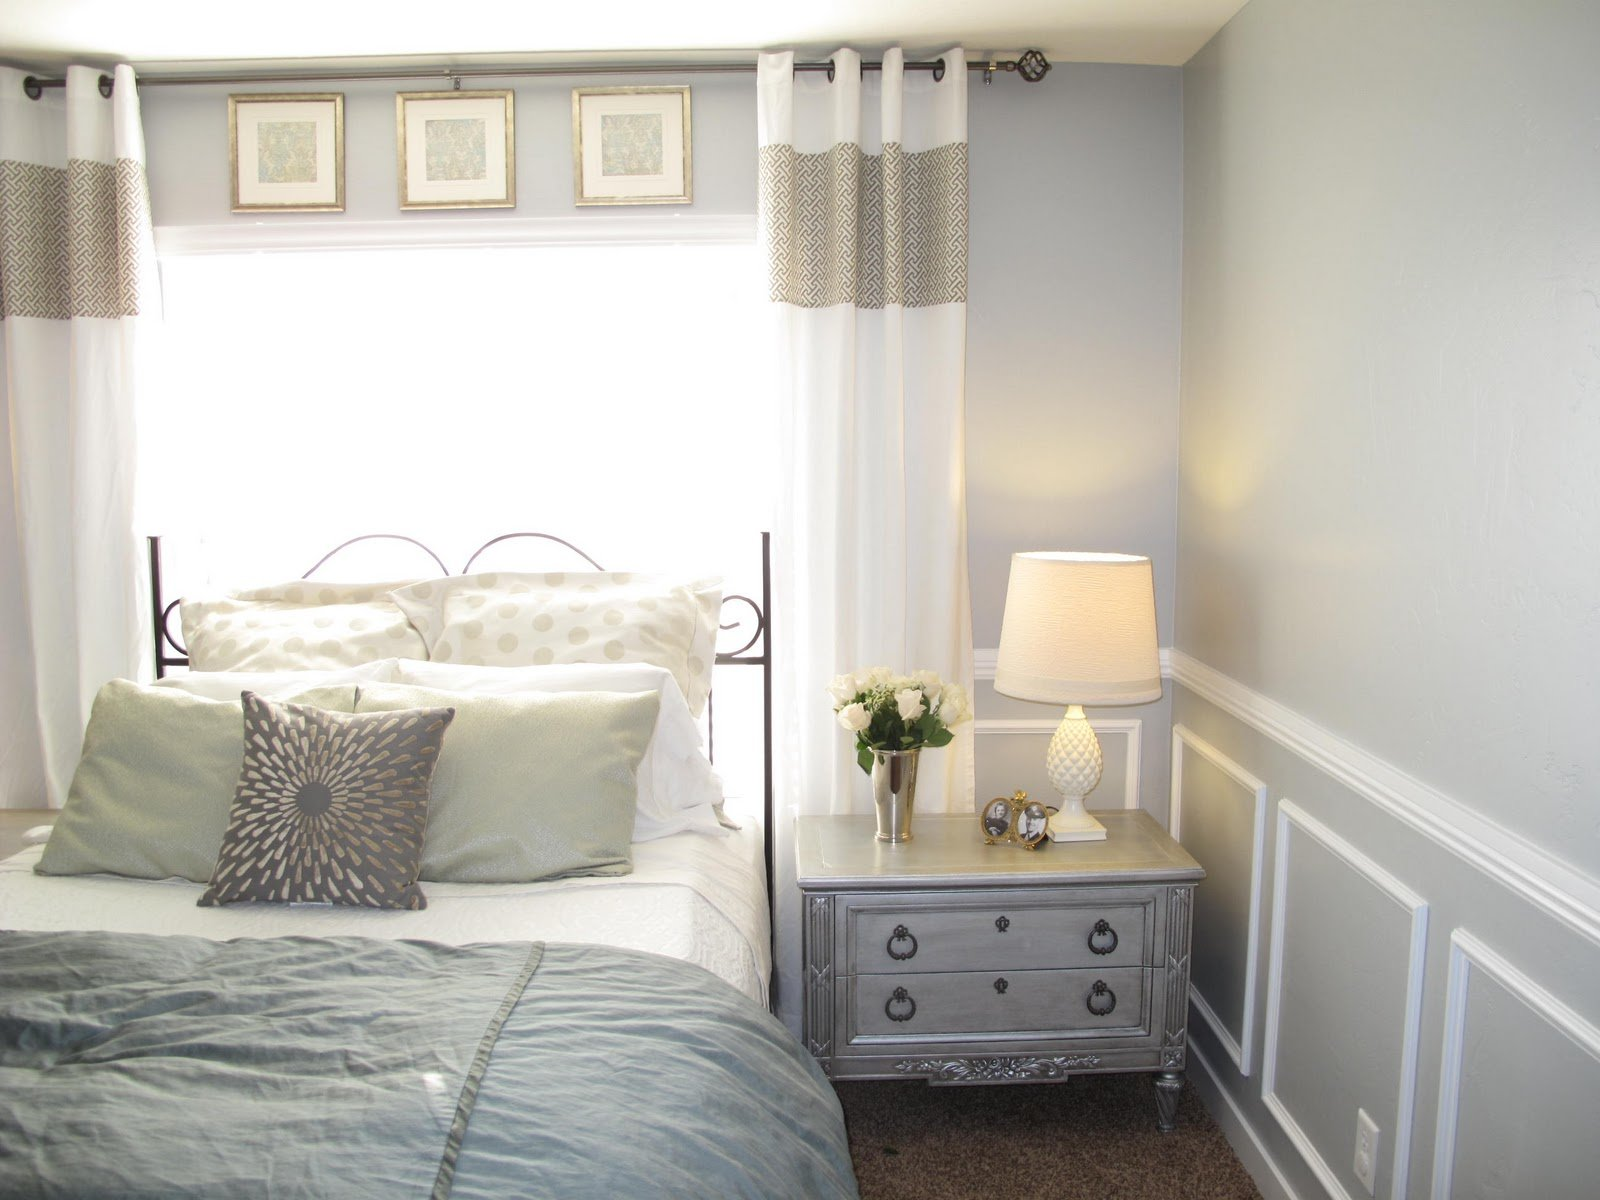 Best Little Miss Penny Wenny How To Extend Your Curtains With Style With Pictures